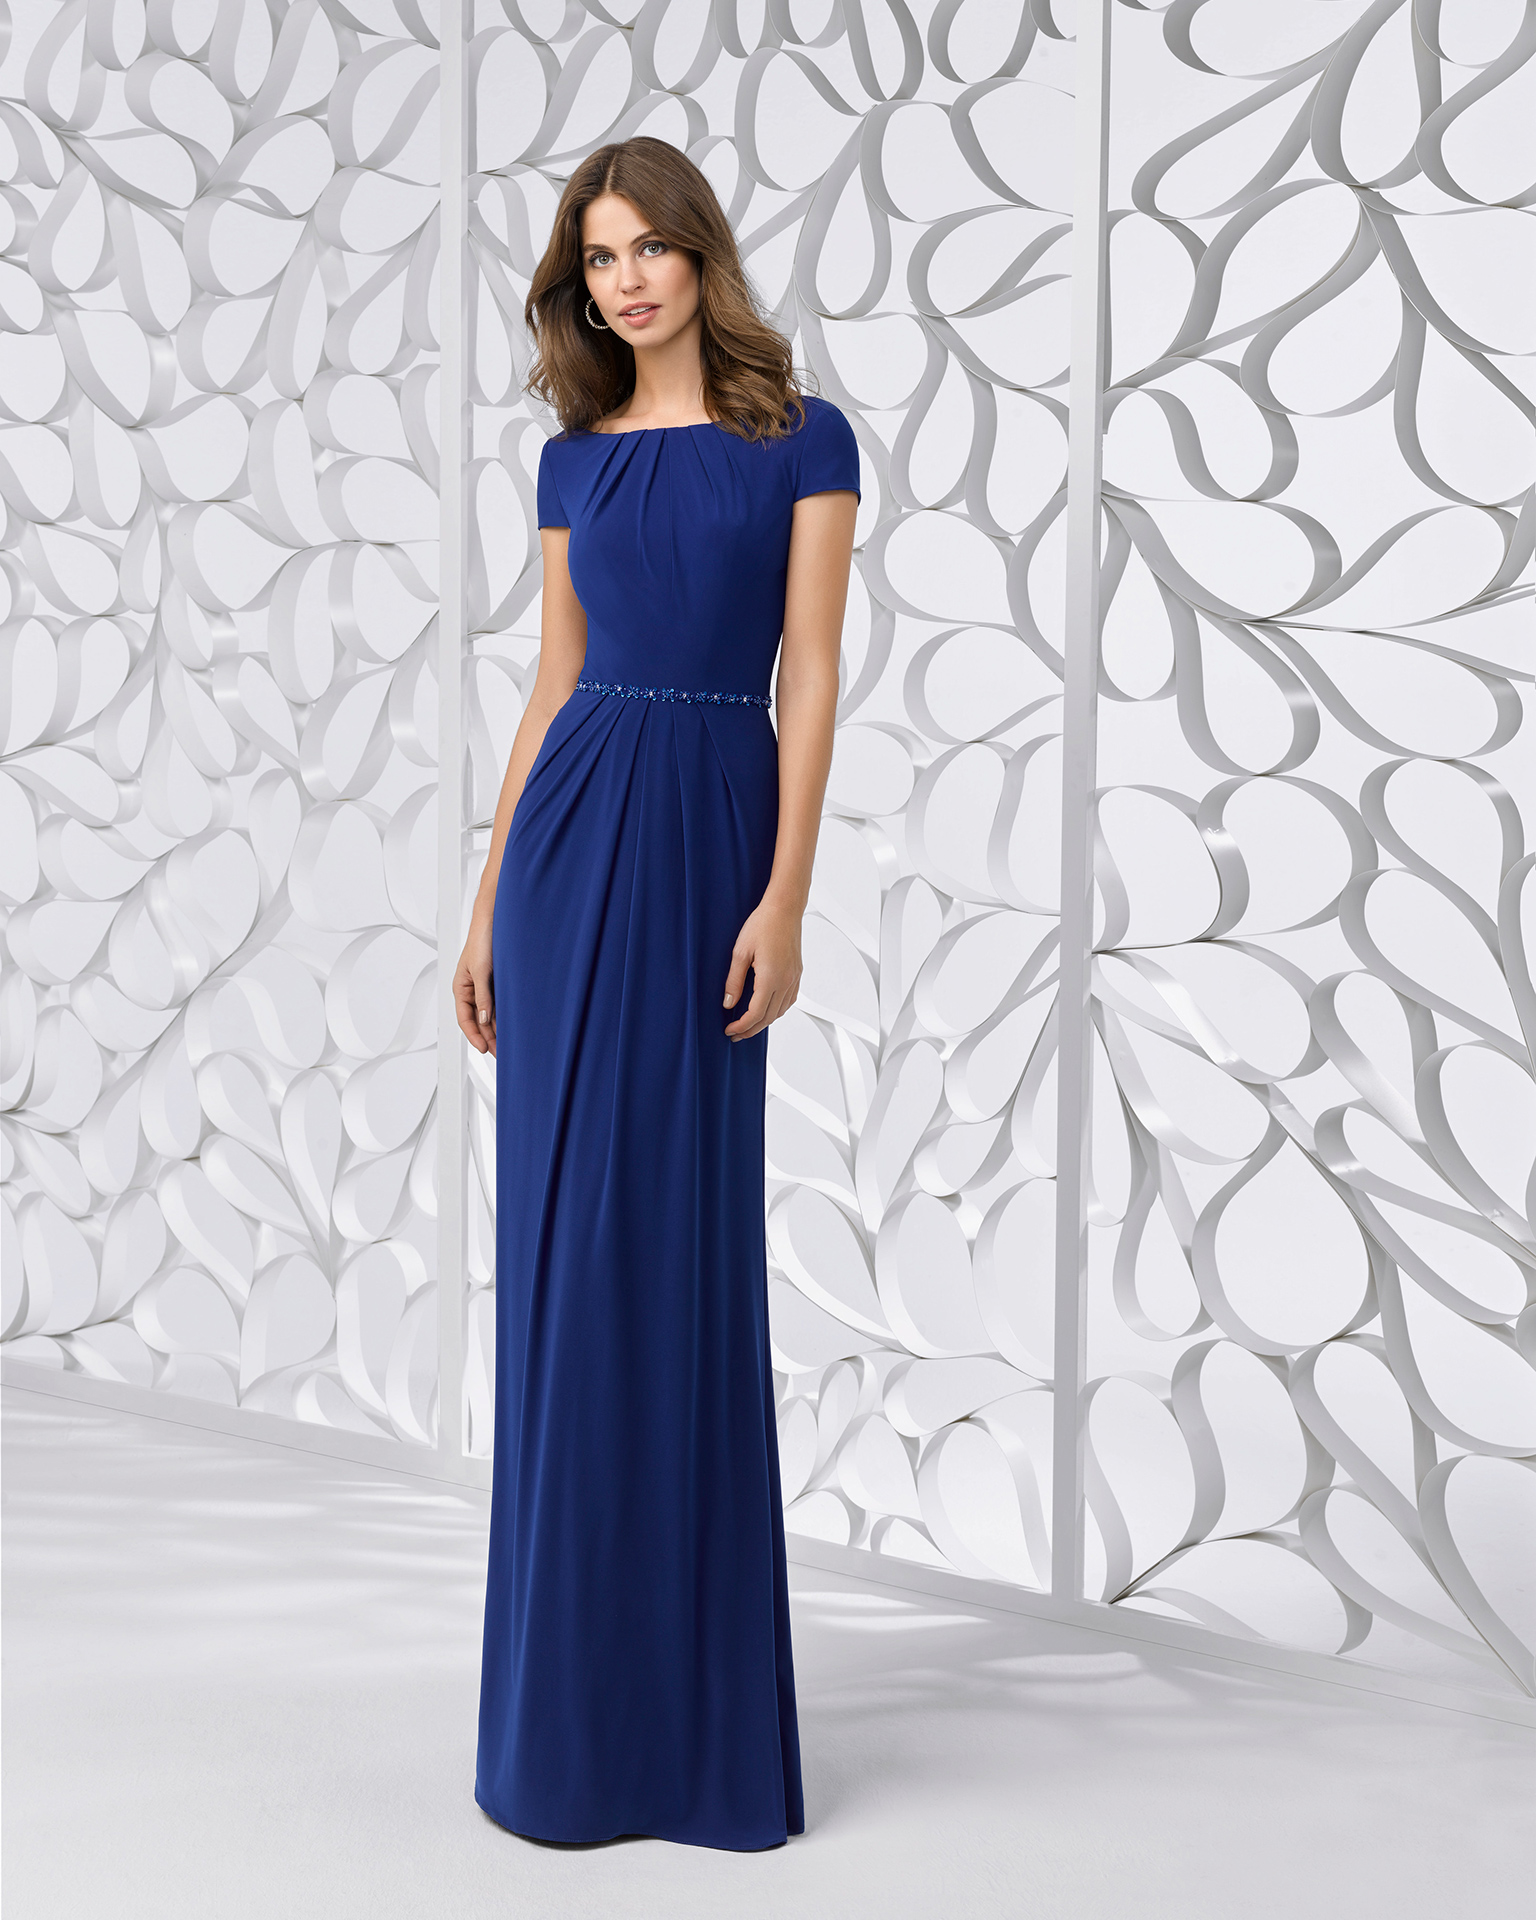 Stretch crepe cocktail dress with short sleeves, bateau neckline, cape back, gathered bodice and skirt and beaded belt. Available in cobalt, silver and red. 2018 FIESTA AIRE BARCELONA Collection.